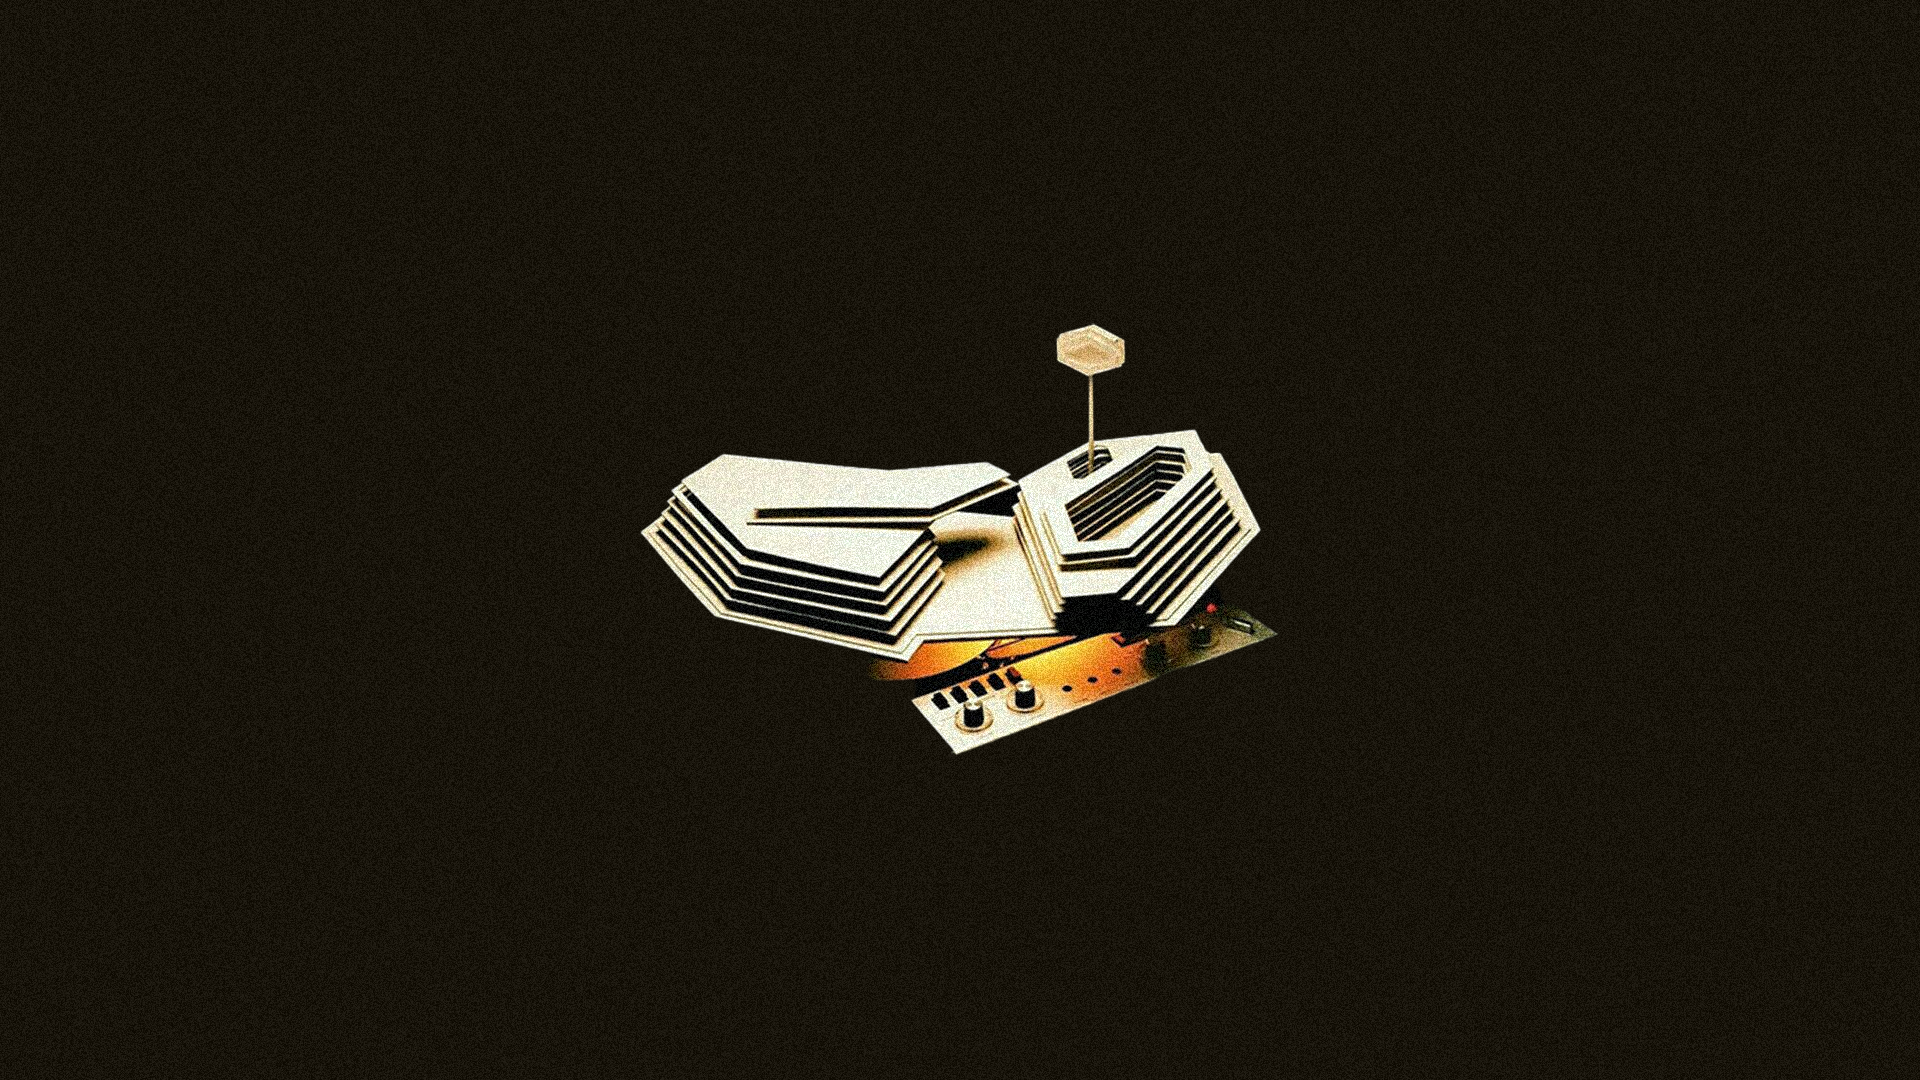 Tranquility Base Hotel Casino minimalist wallpaper for PC 1920x1080